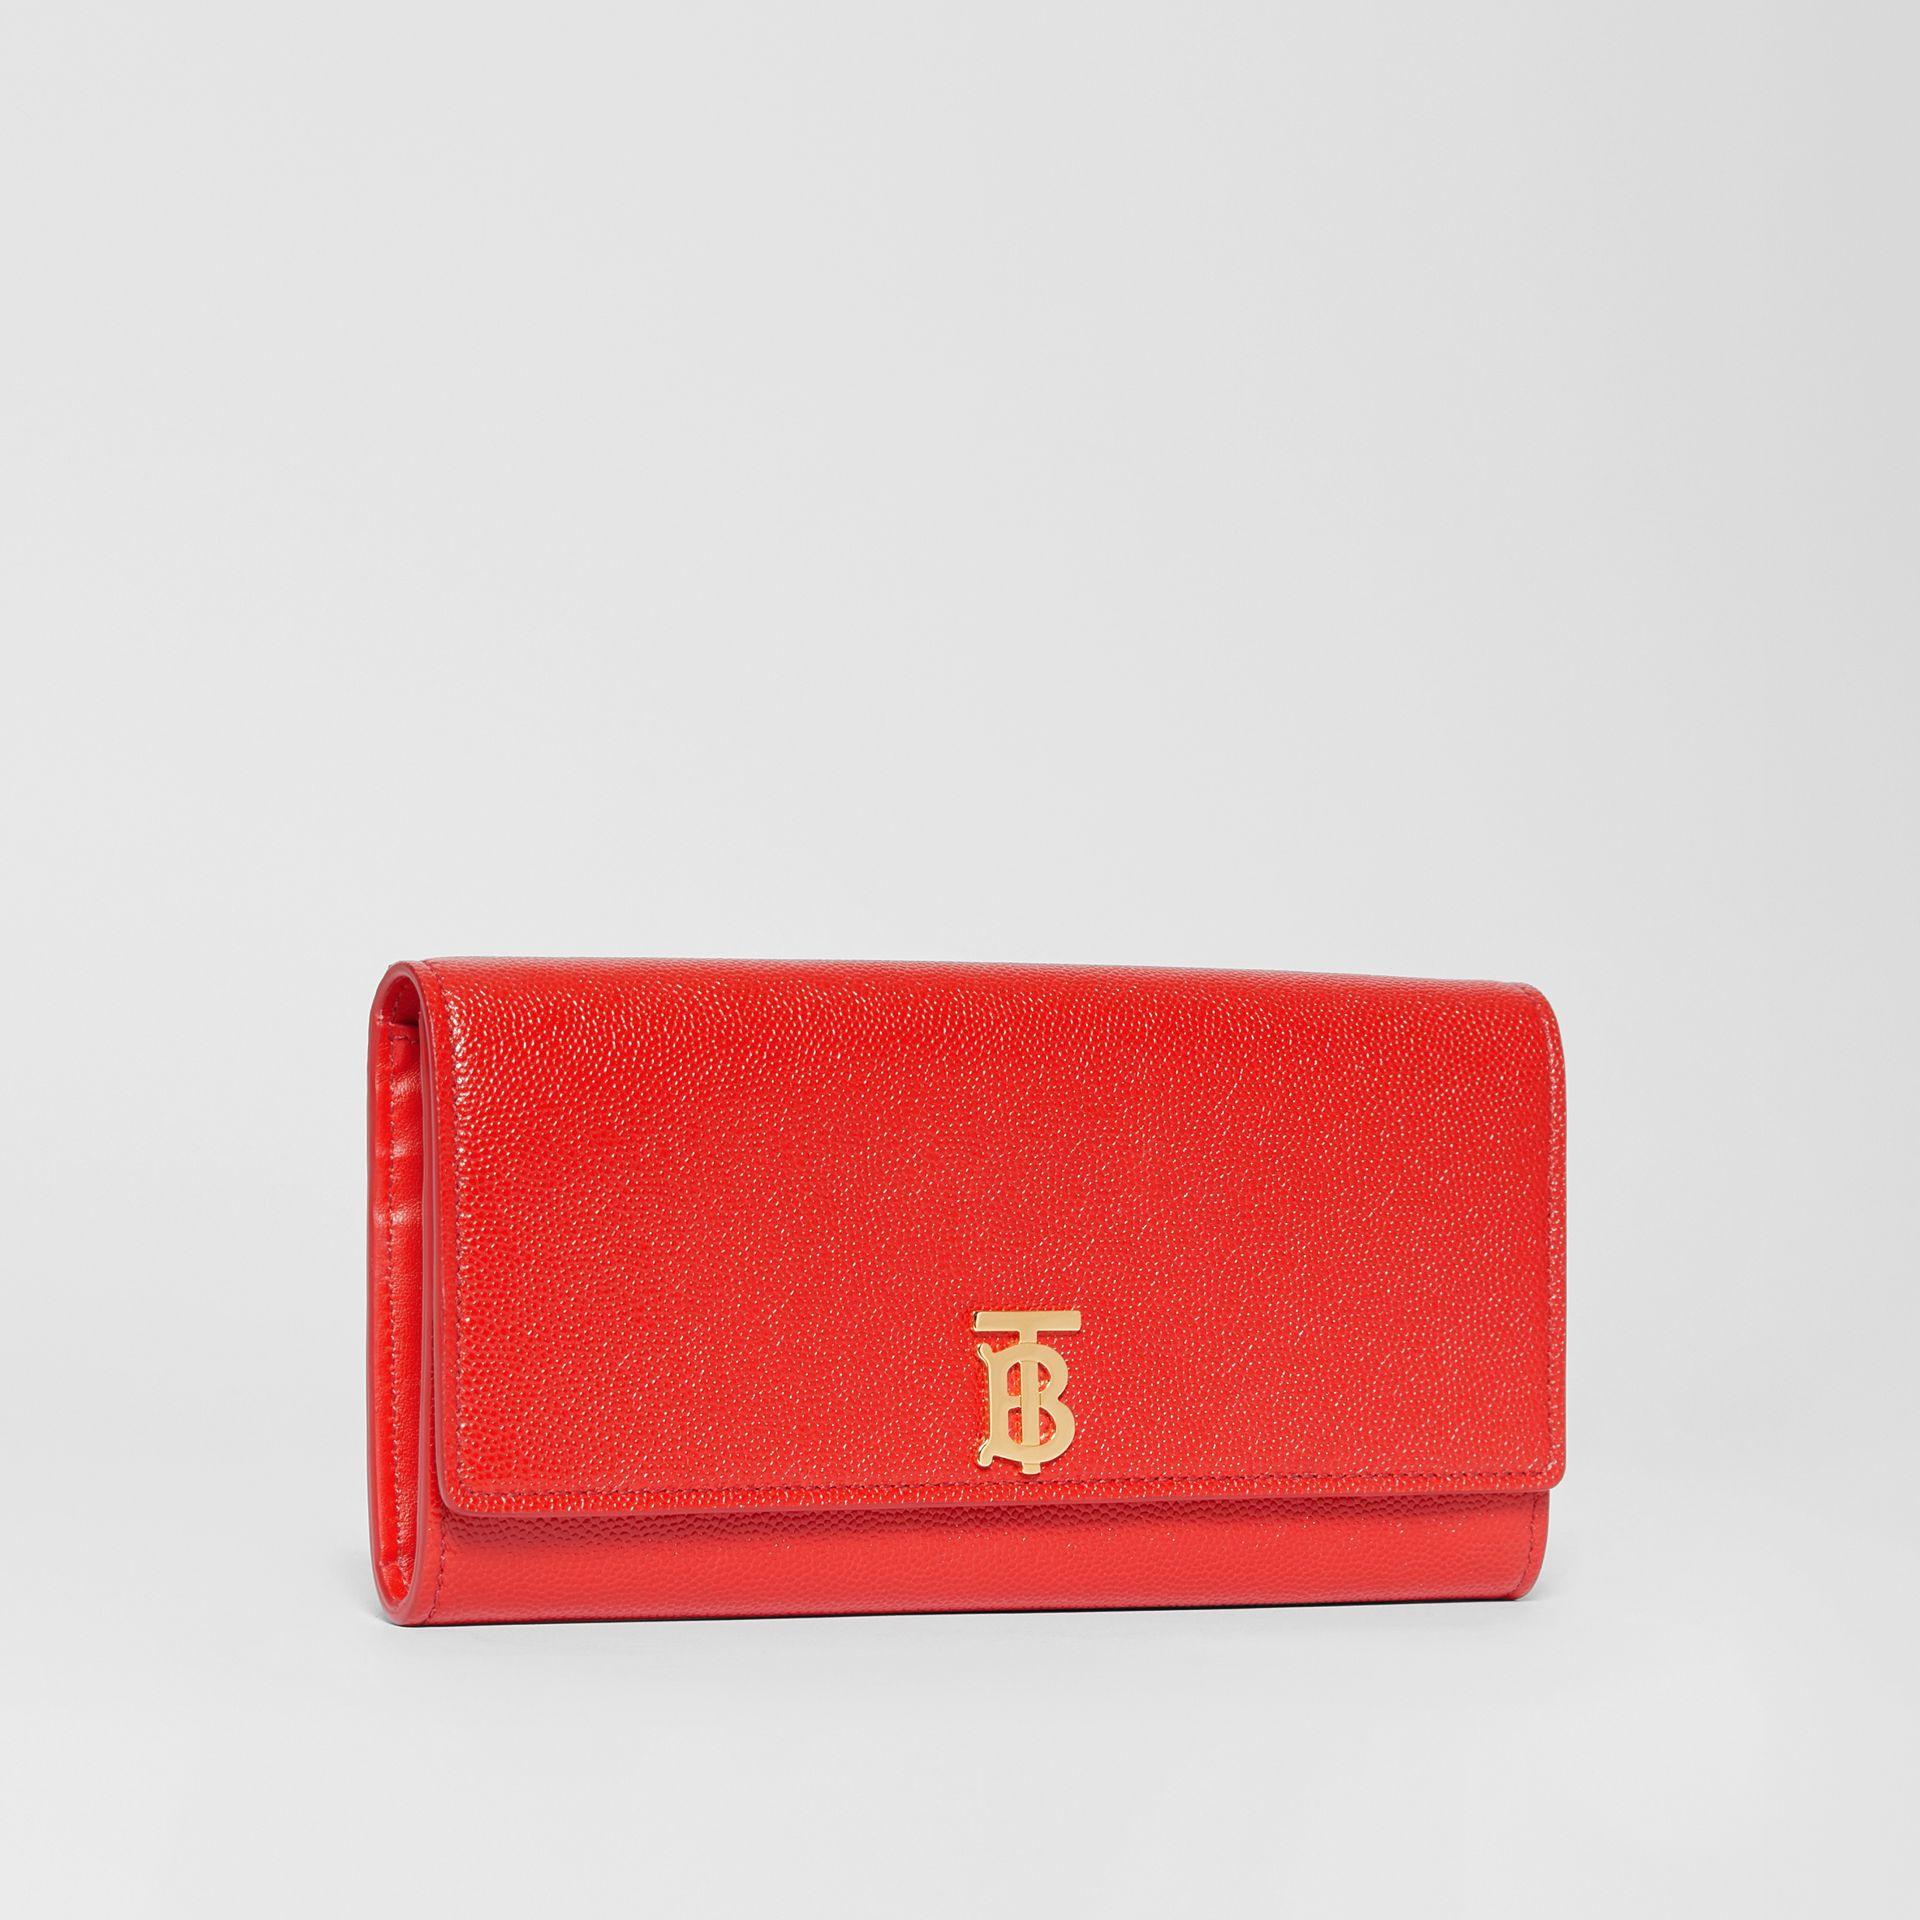 Monogram Motif Grainy Leather Continental Wallet in Bright Red - Women | Burberry Australia - gallery image 4